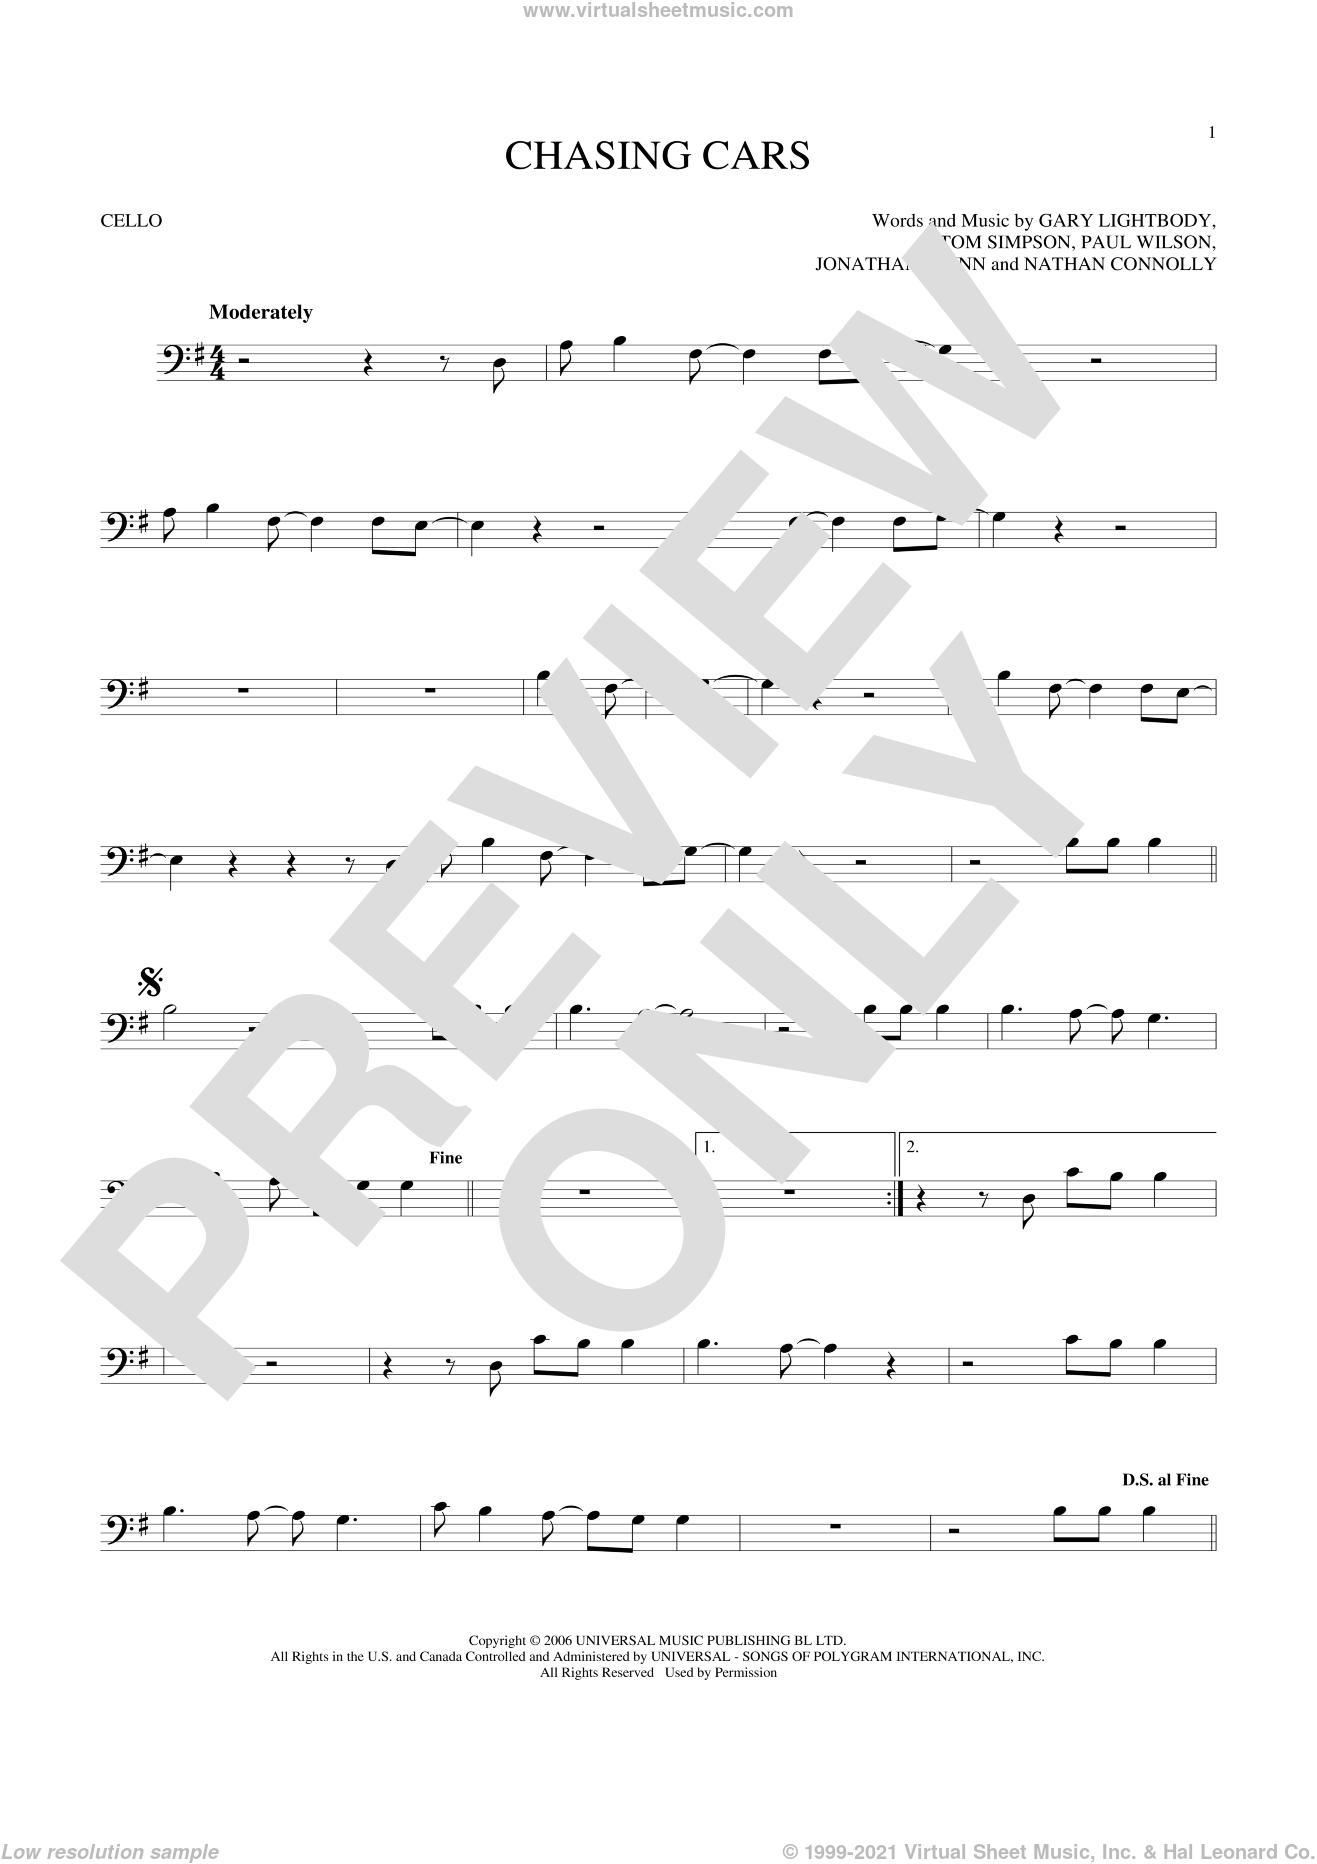 Chasing Cars sheet music for cello solo by Snow Patrol, Gary Lightbody, Jonathan Quinn, Nathan Connolly, Paul Wilson and Tom Simpson, intermediate skill level